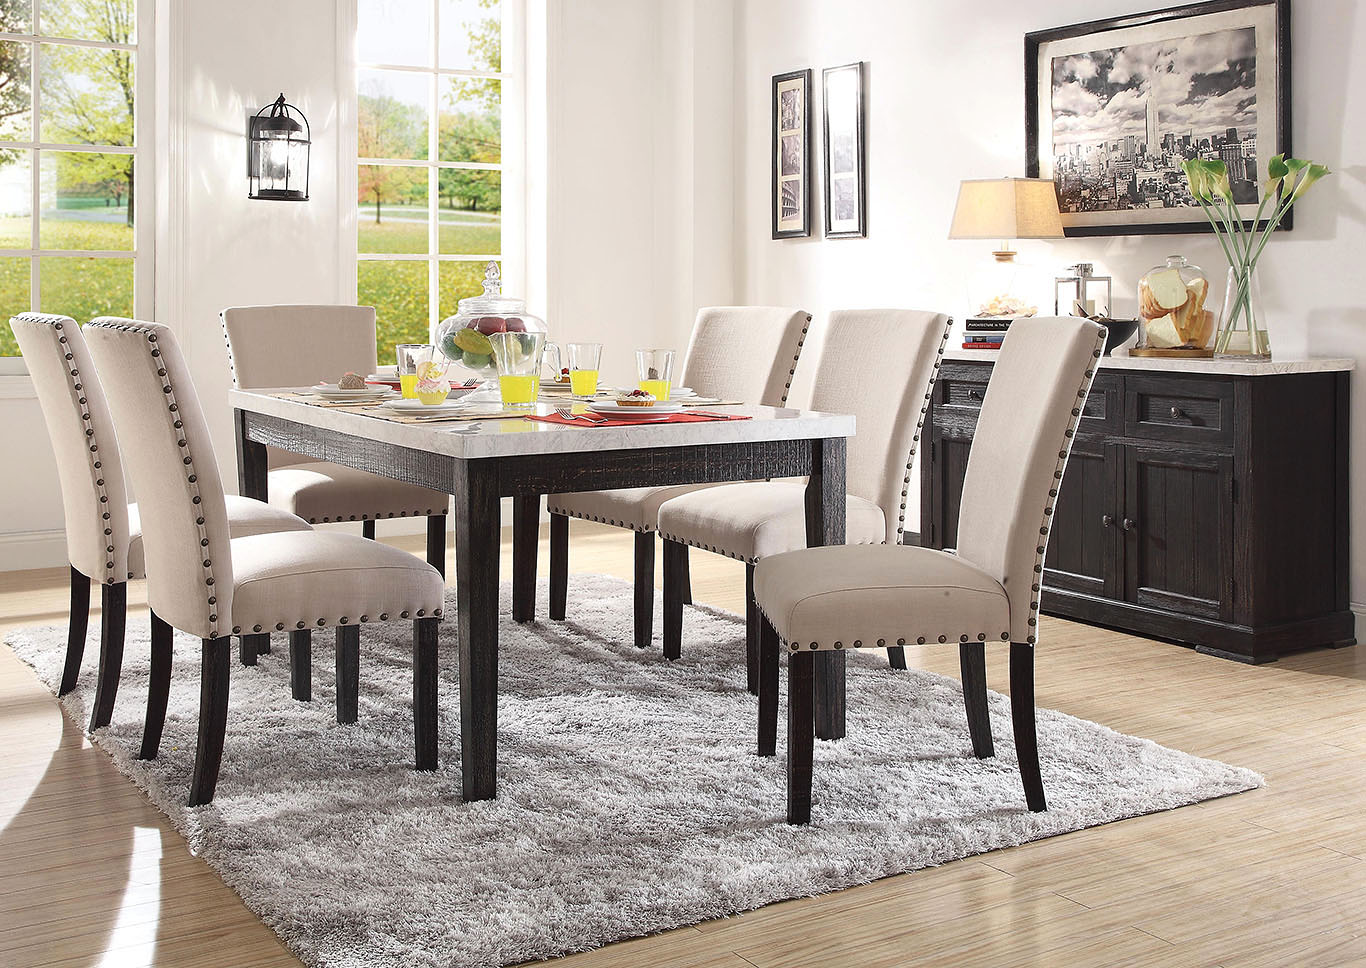 Nolan White Marble/Salvage Oak Dining Table,Acme